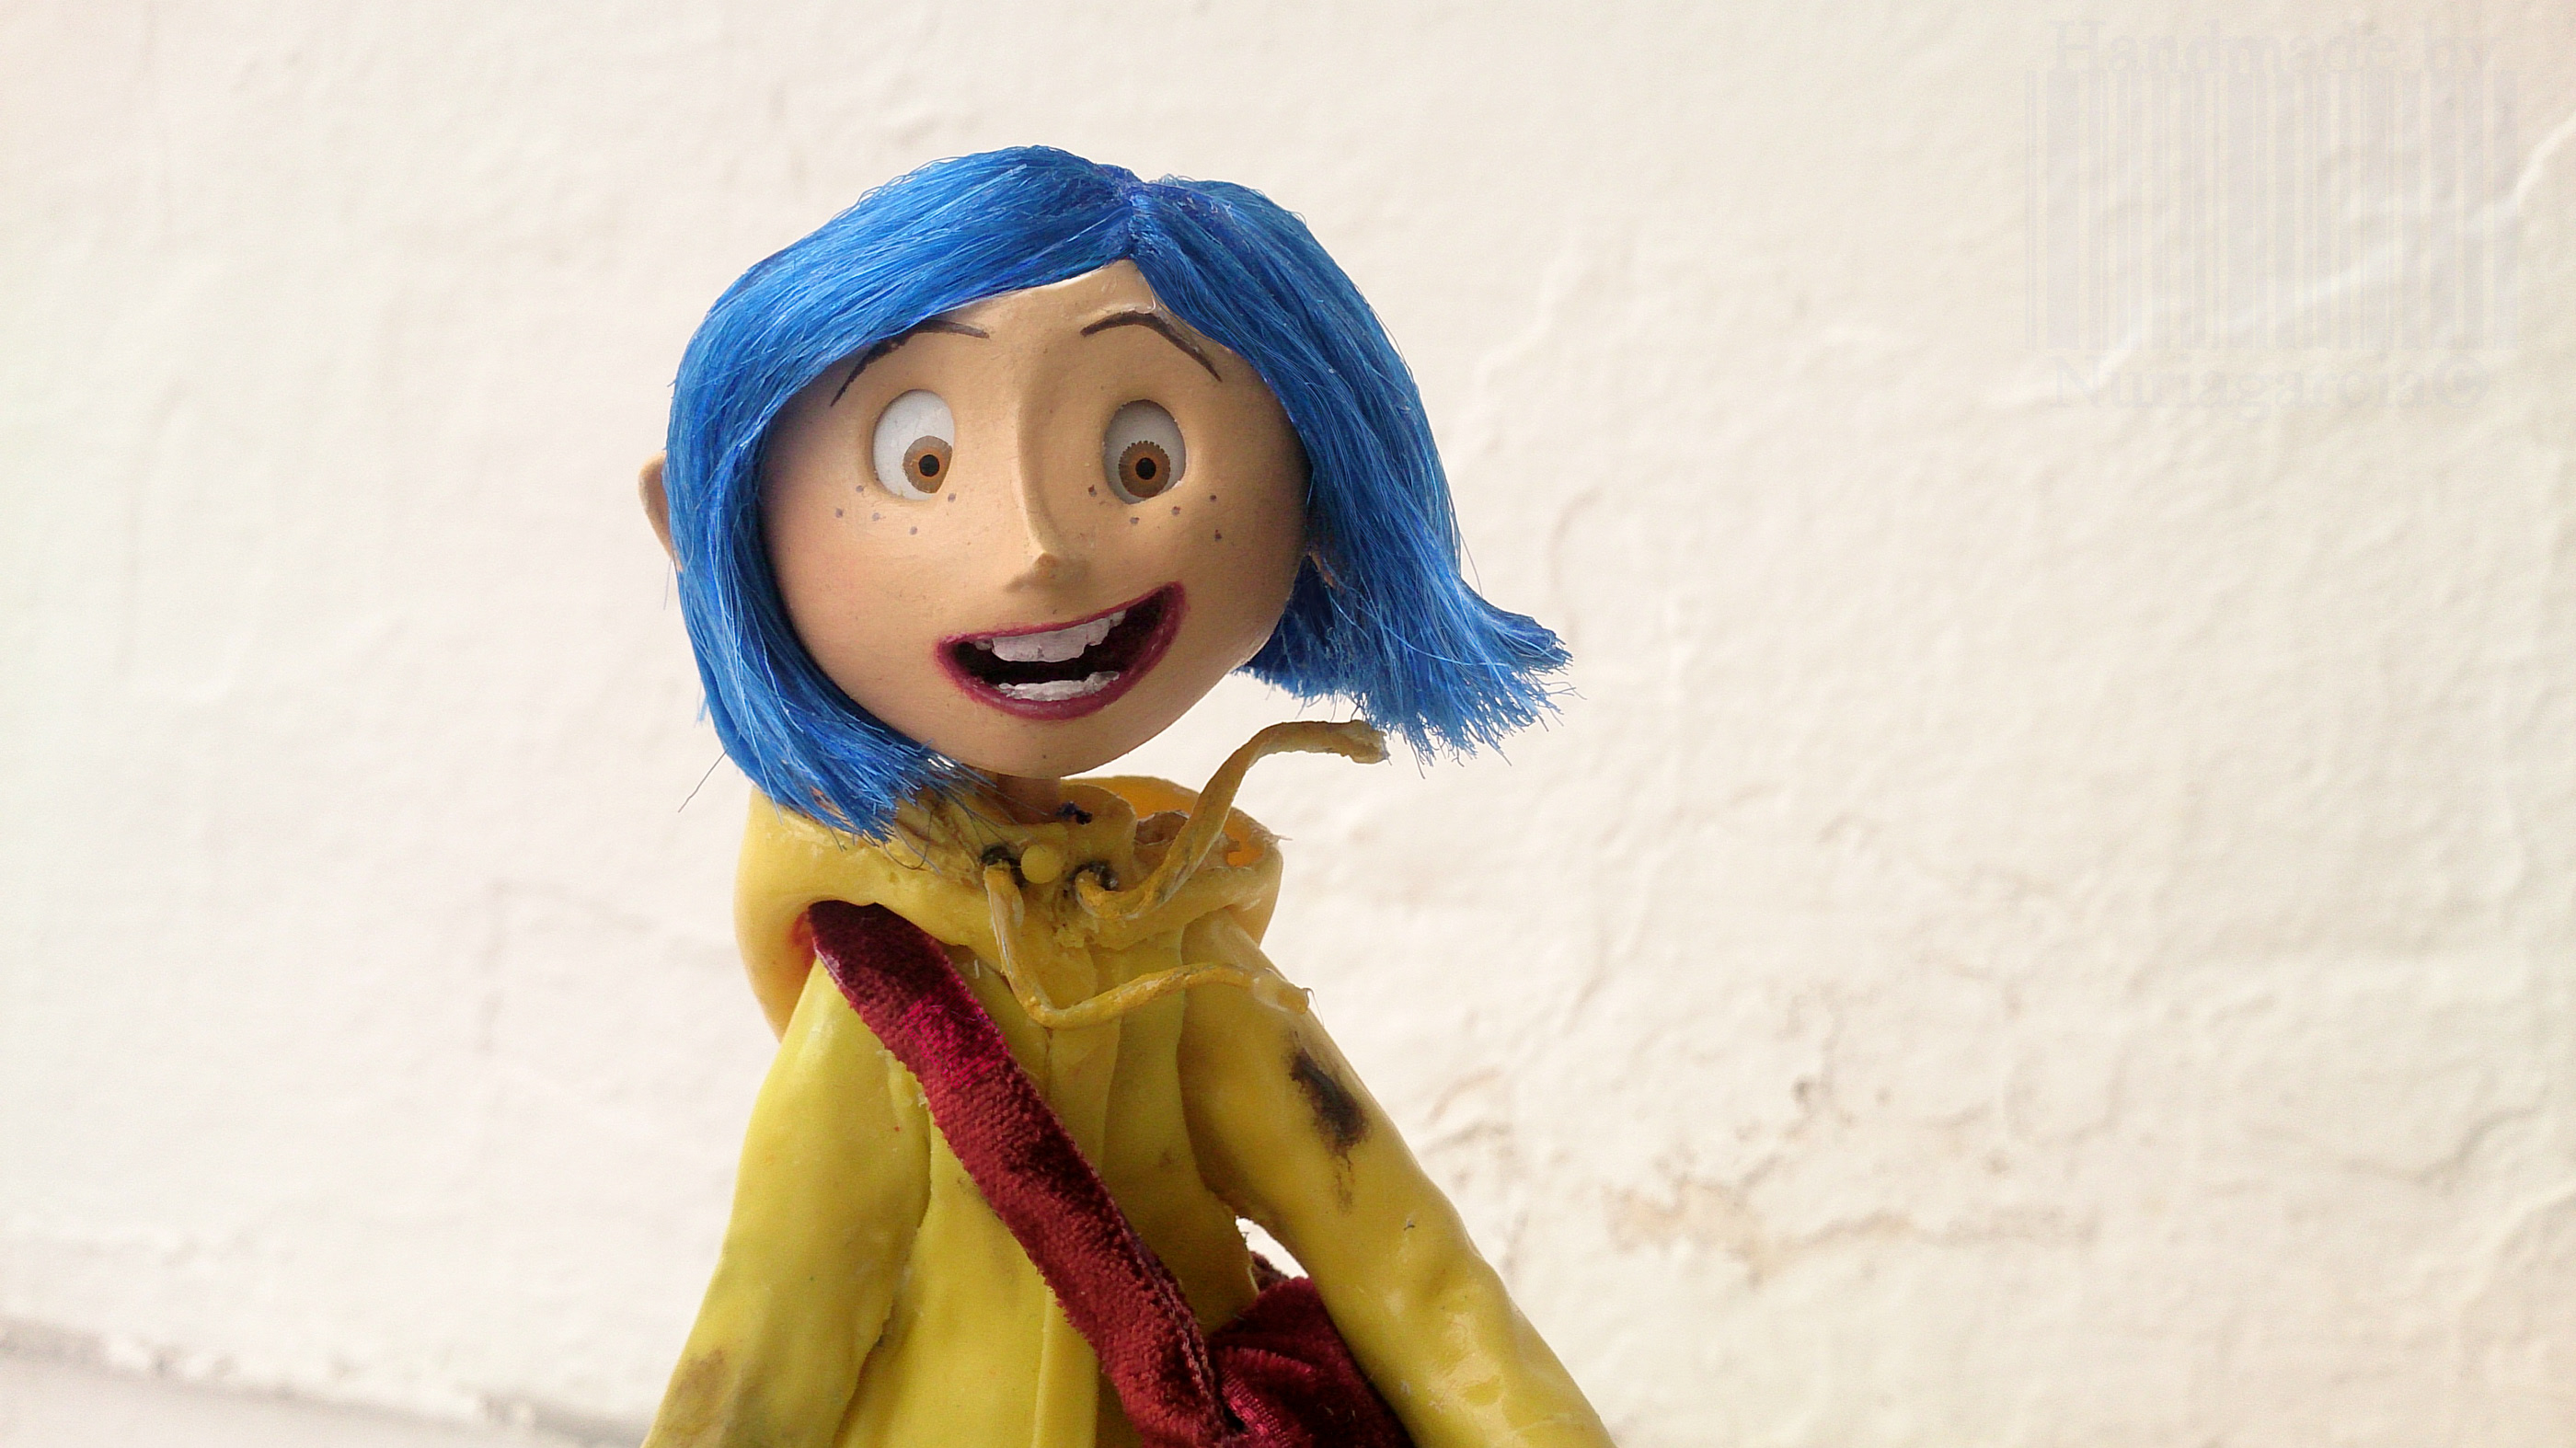 Handmade Customized Coraline By Nuria Garcia On Behance